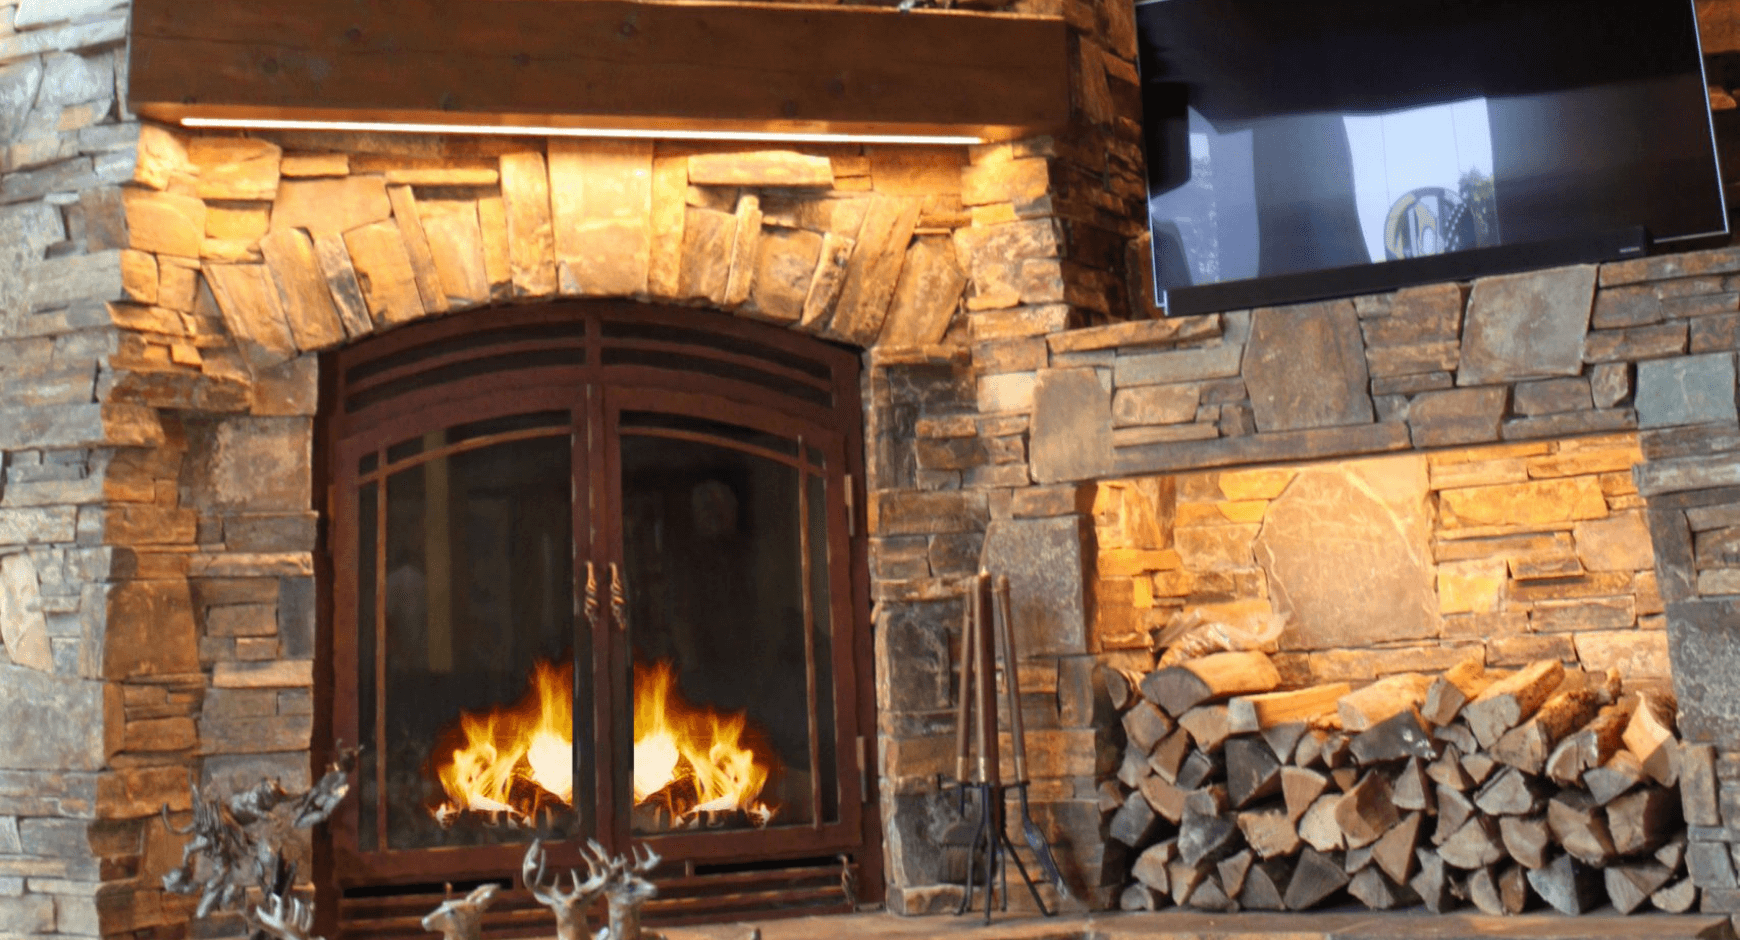 Dry stacked stone around a fireplace and wood pile